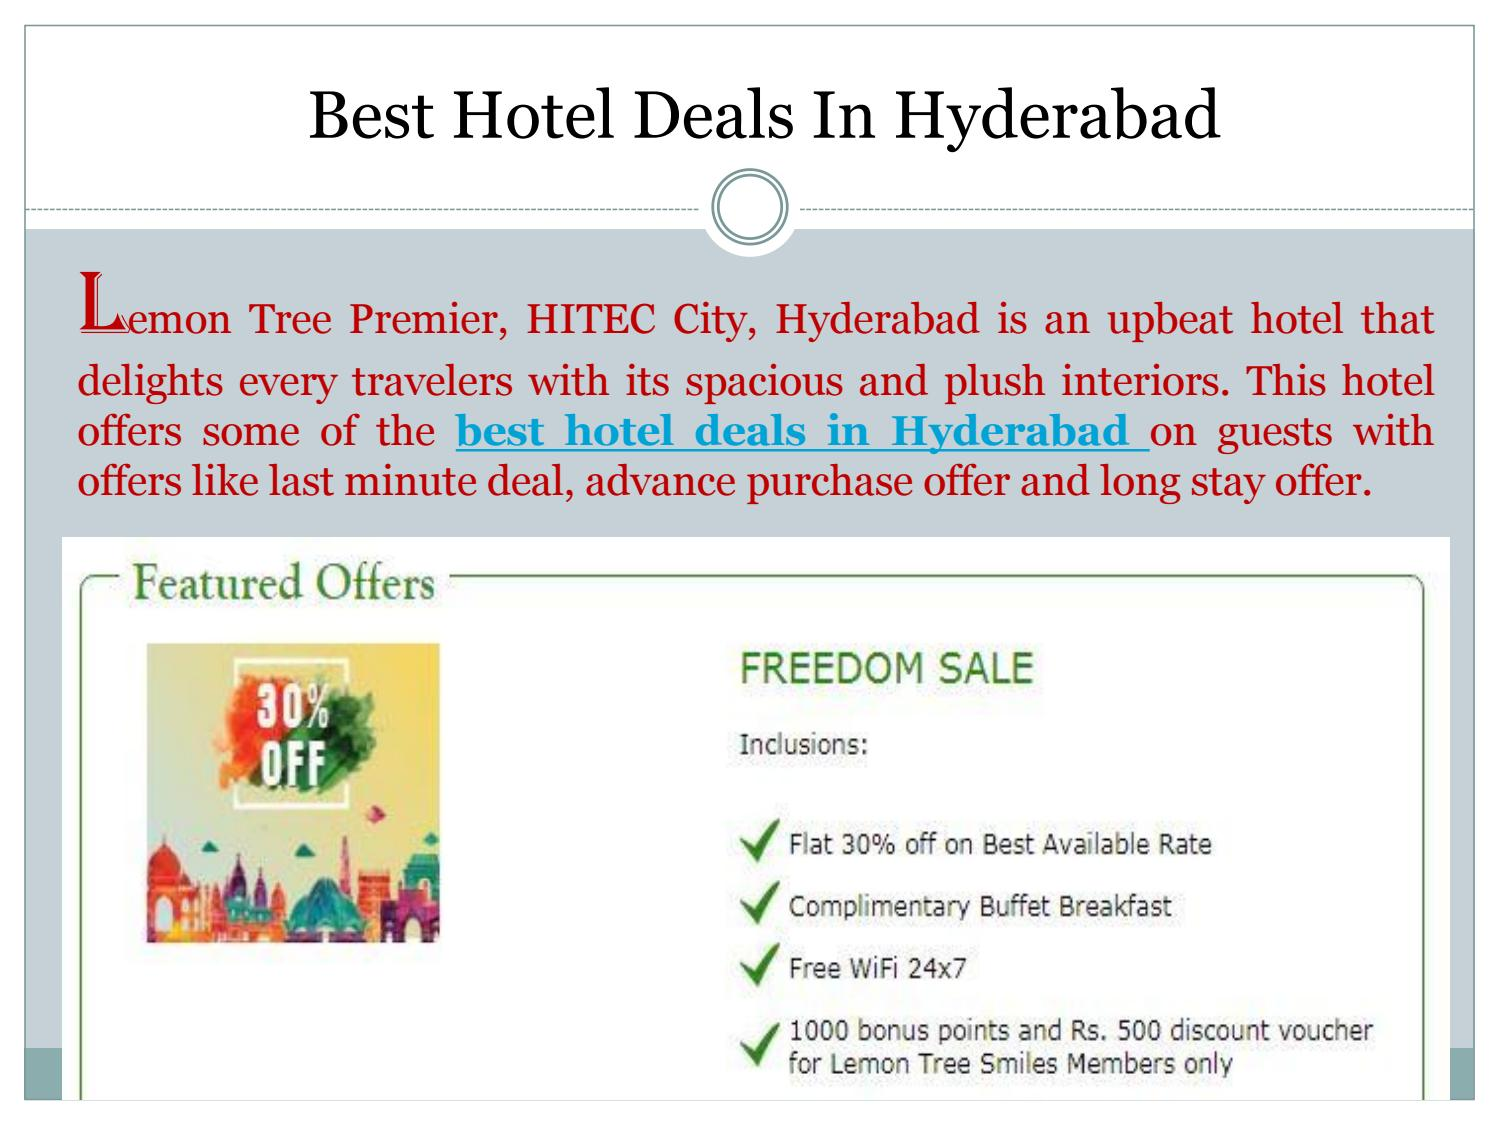 Best hotel deals in hyderabad by kirtisharma issuu for Best hotel offers